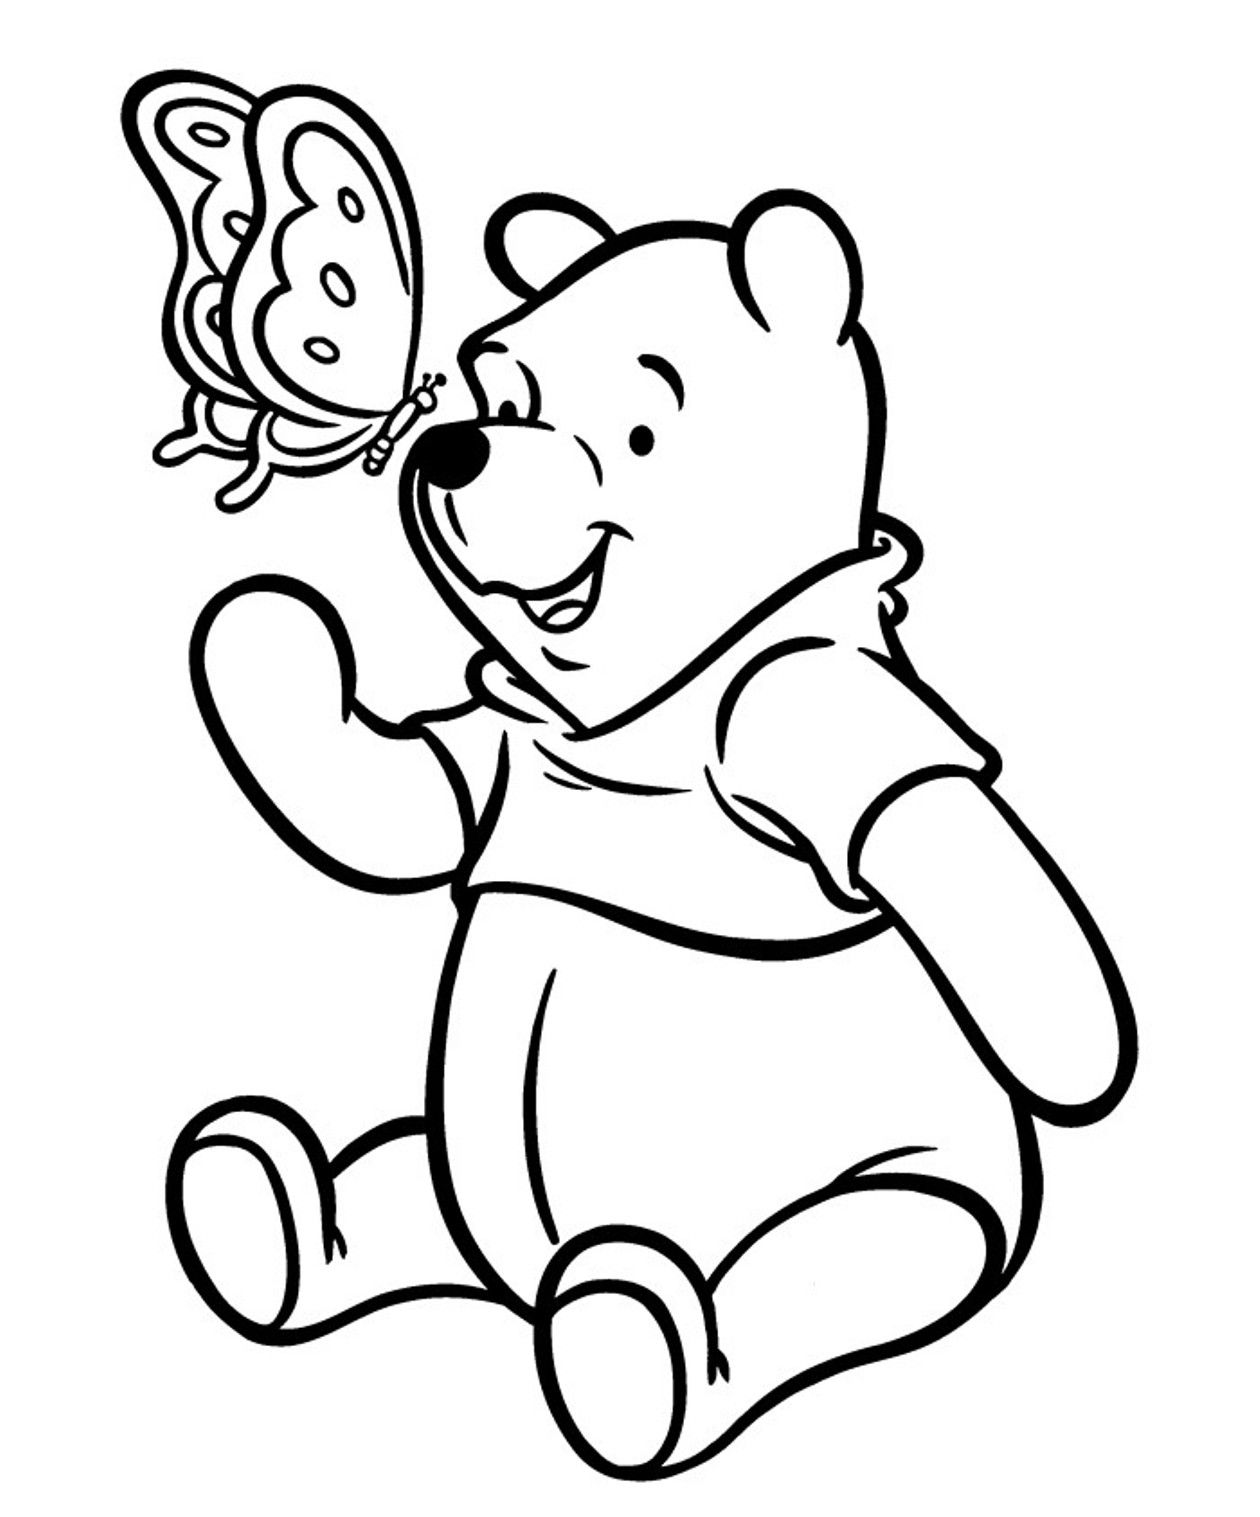 winnie the pooh and butterfly coloring pages for kids printable winnie the pooh coloring pages for kids - Pooh Bear Coloring Pages Birthday